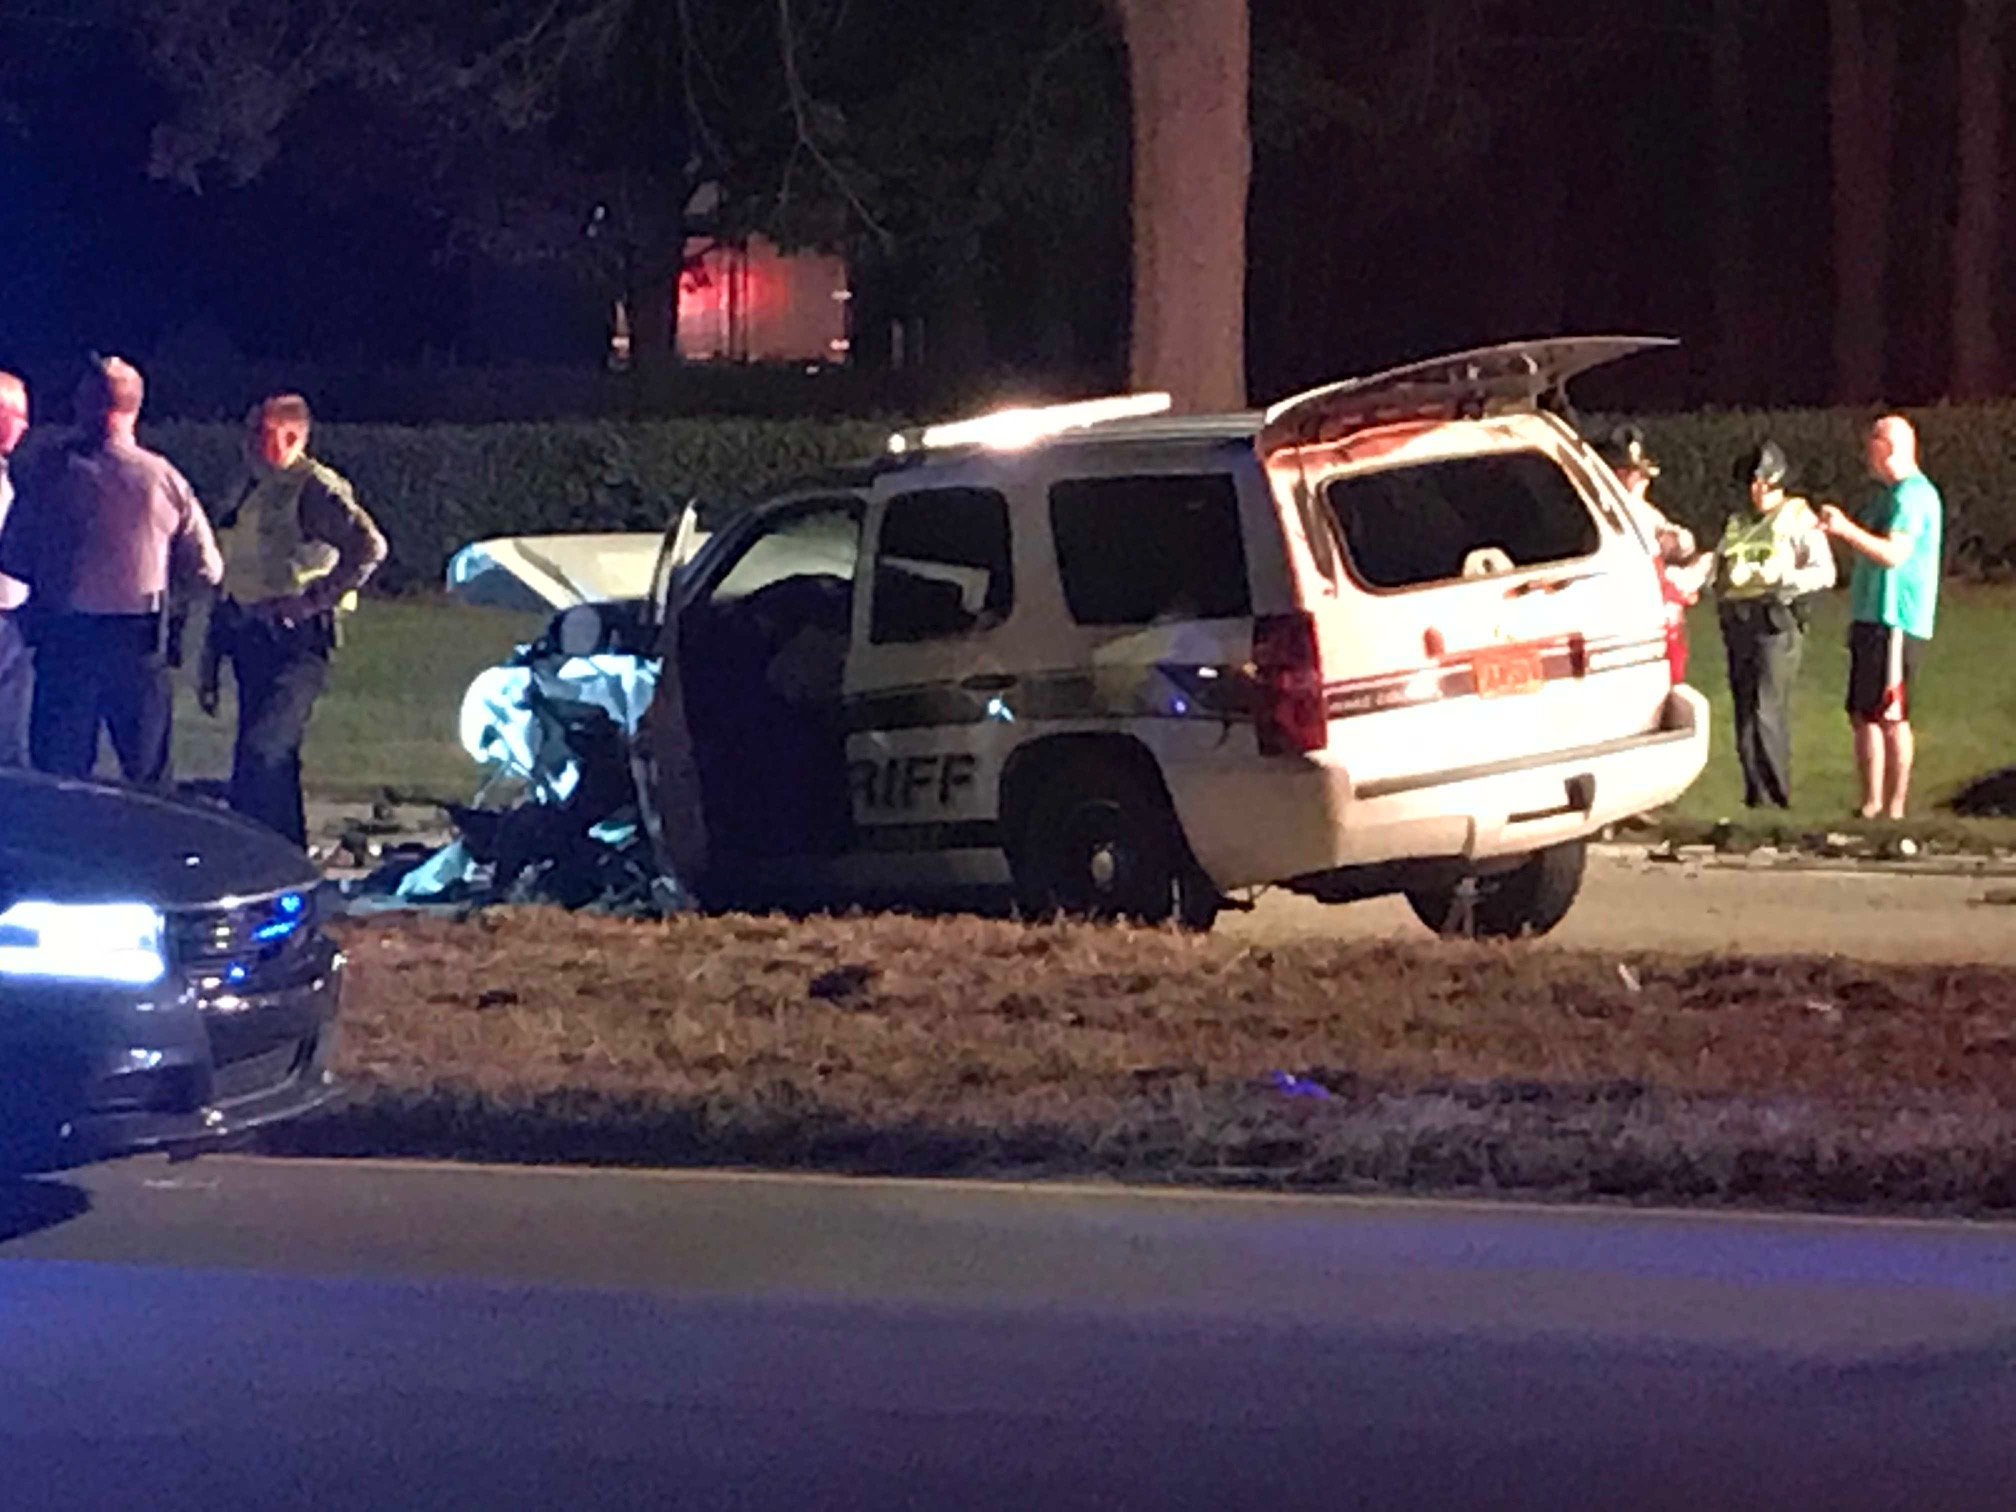 Emergency crews respond to the scene of a two-vehicle crash that left a Wake County deputy and another driver injured Tuesday night.